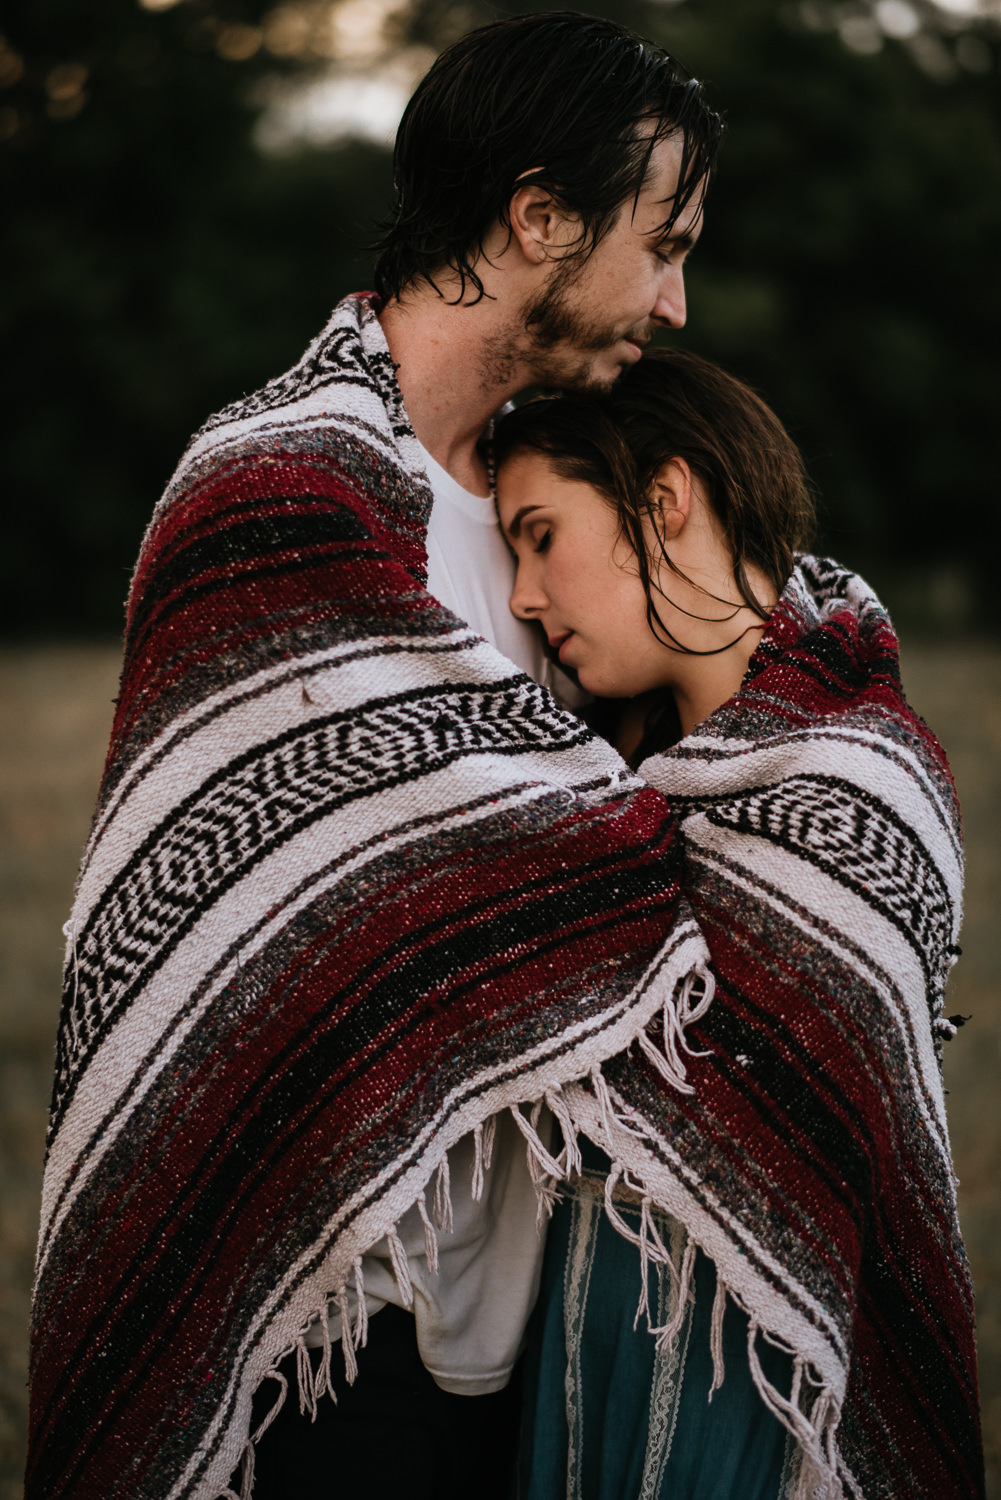 engagement photos with blanket